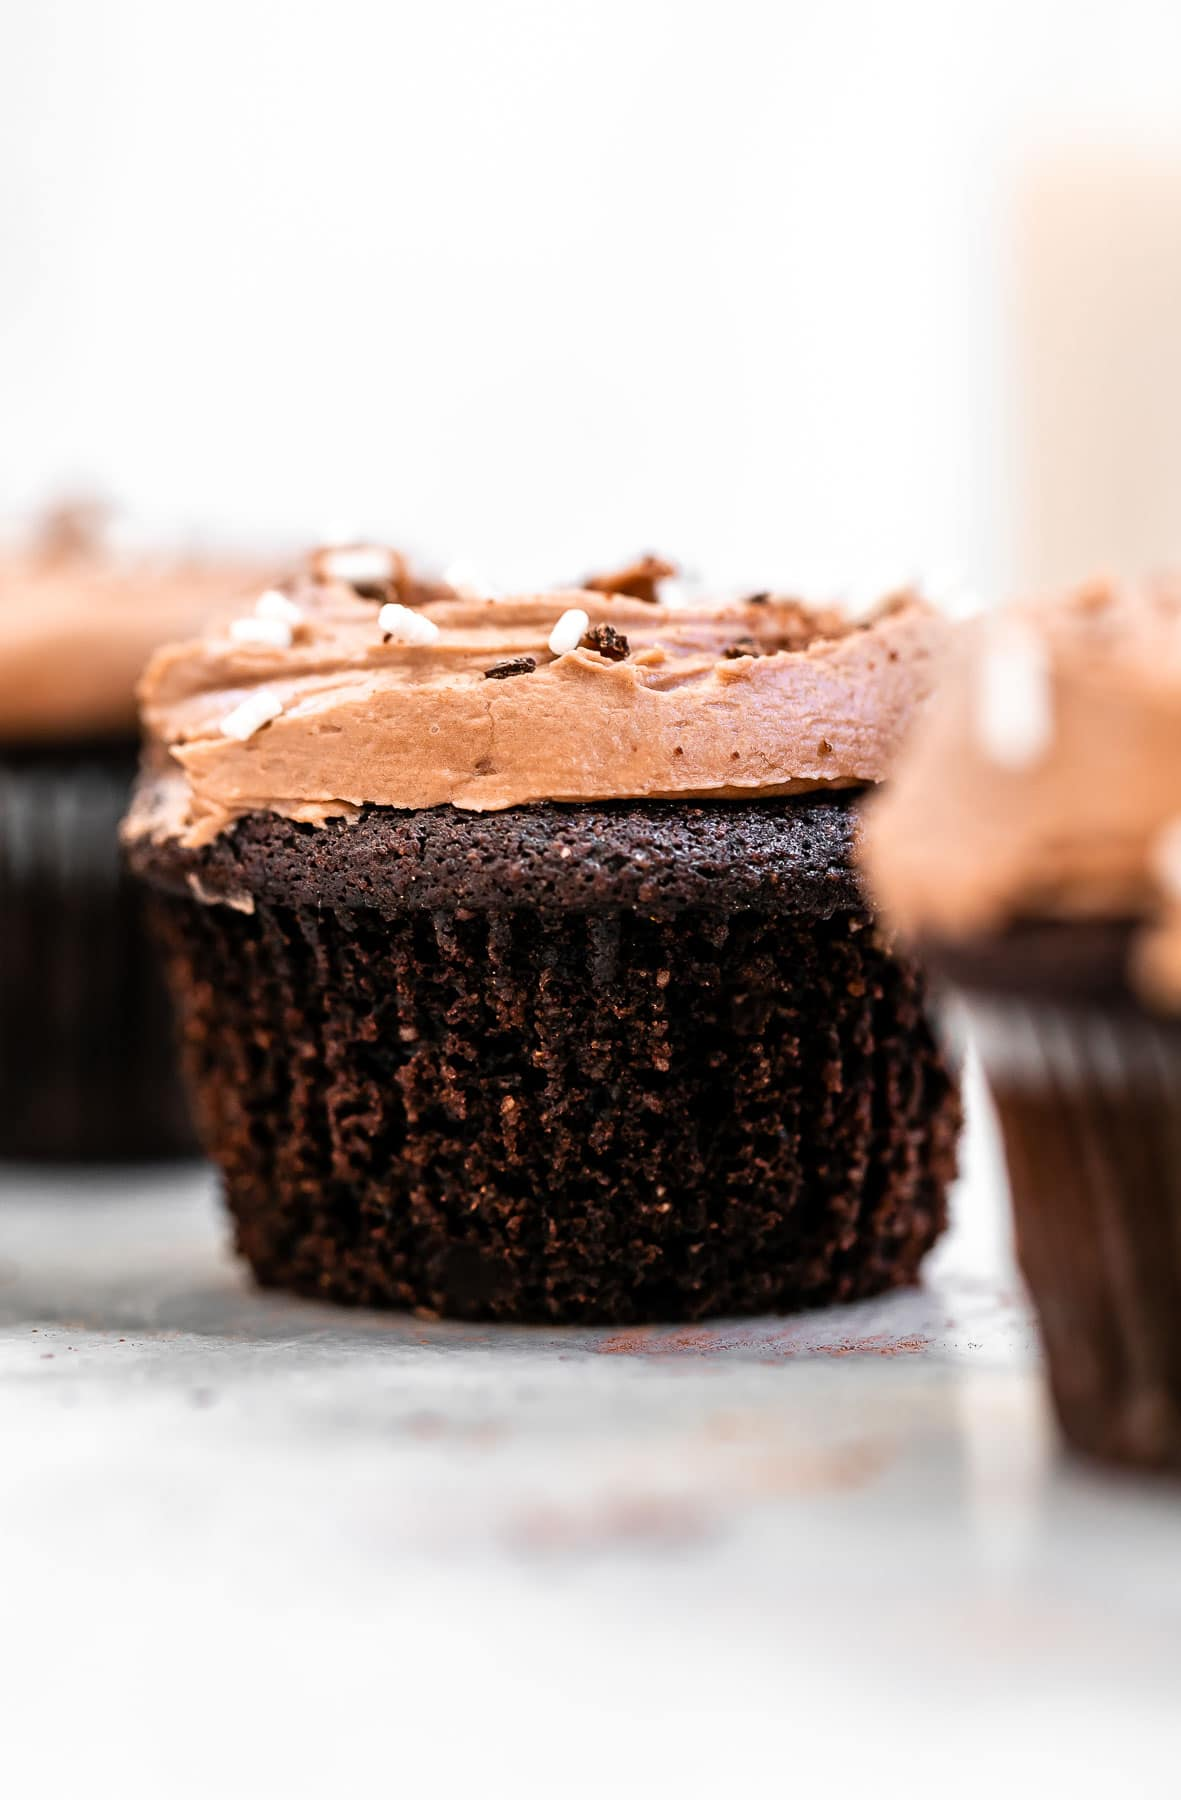 Vegan chocolate cupcake without a wrapper.